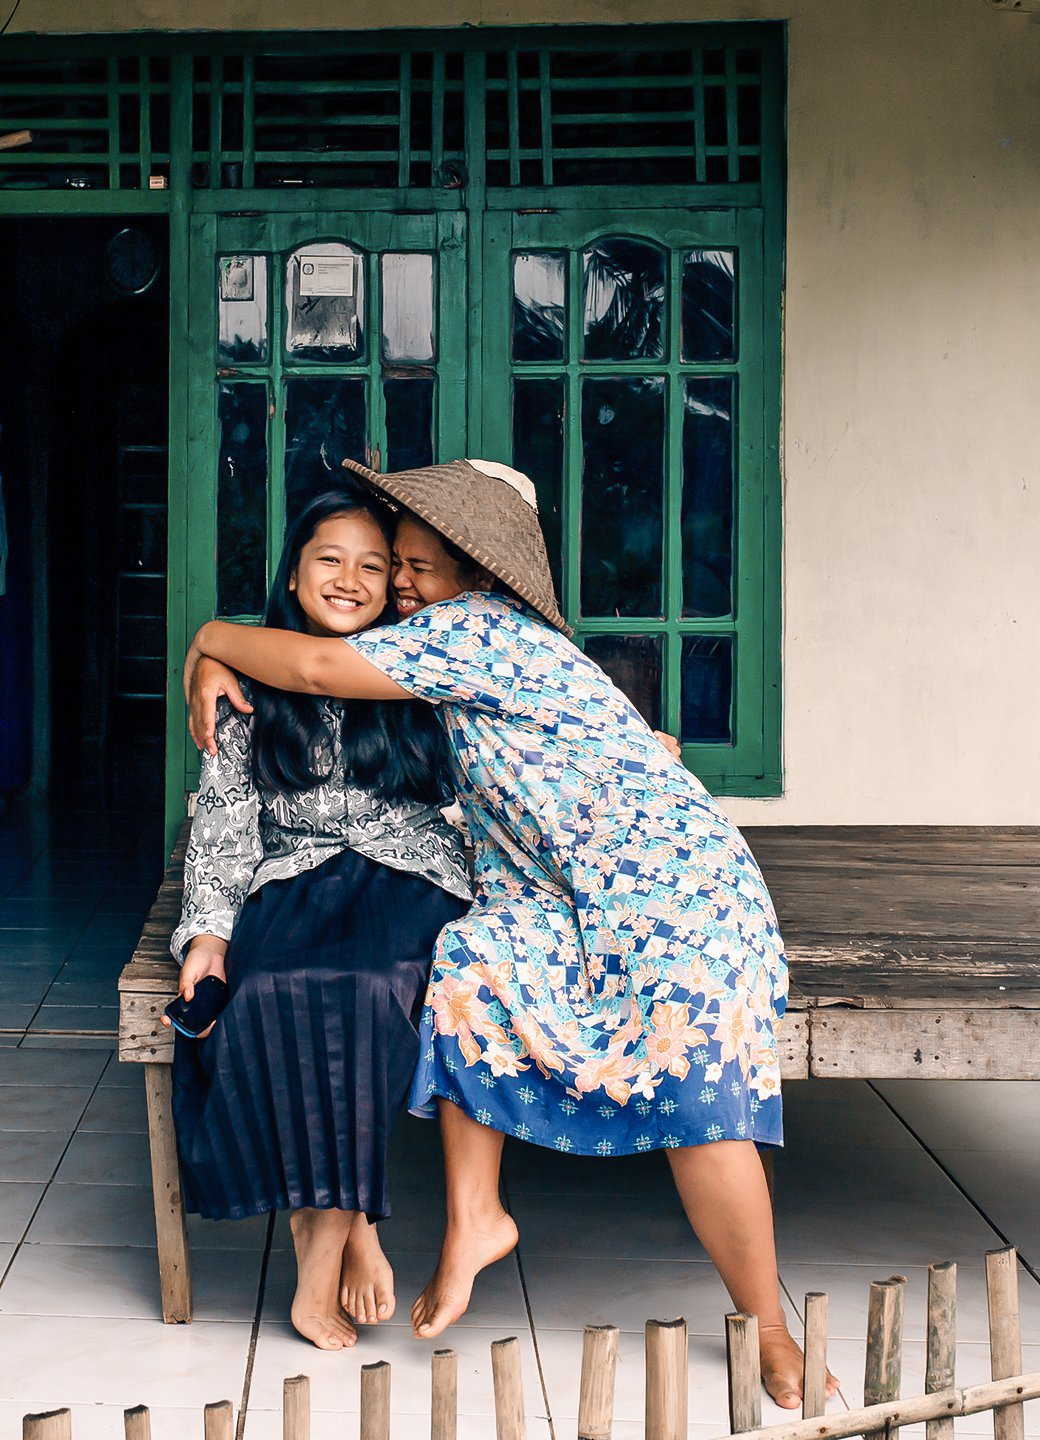 Anisa and her mother in Indonesia